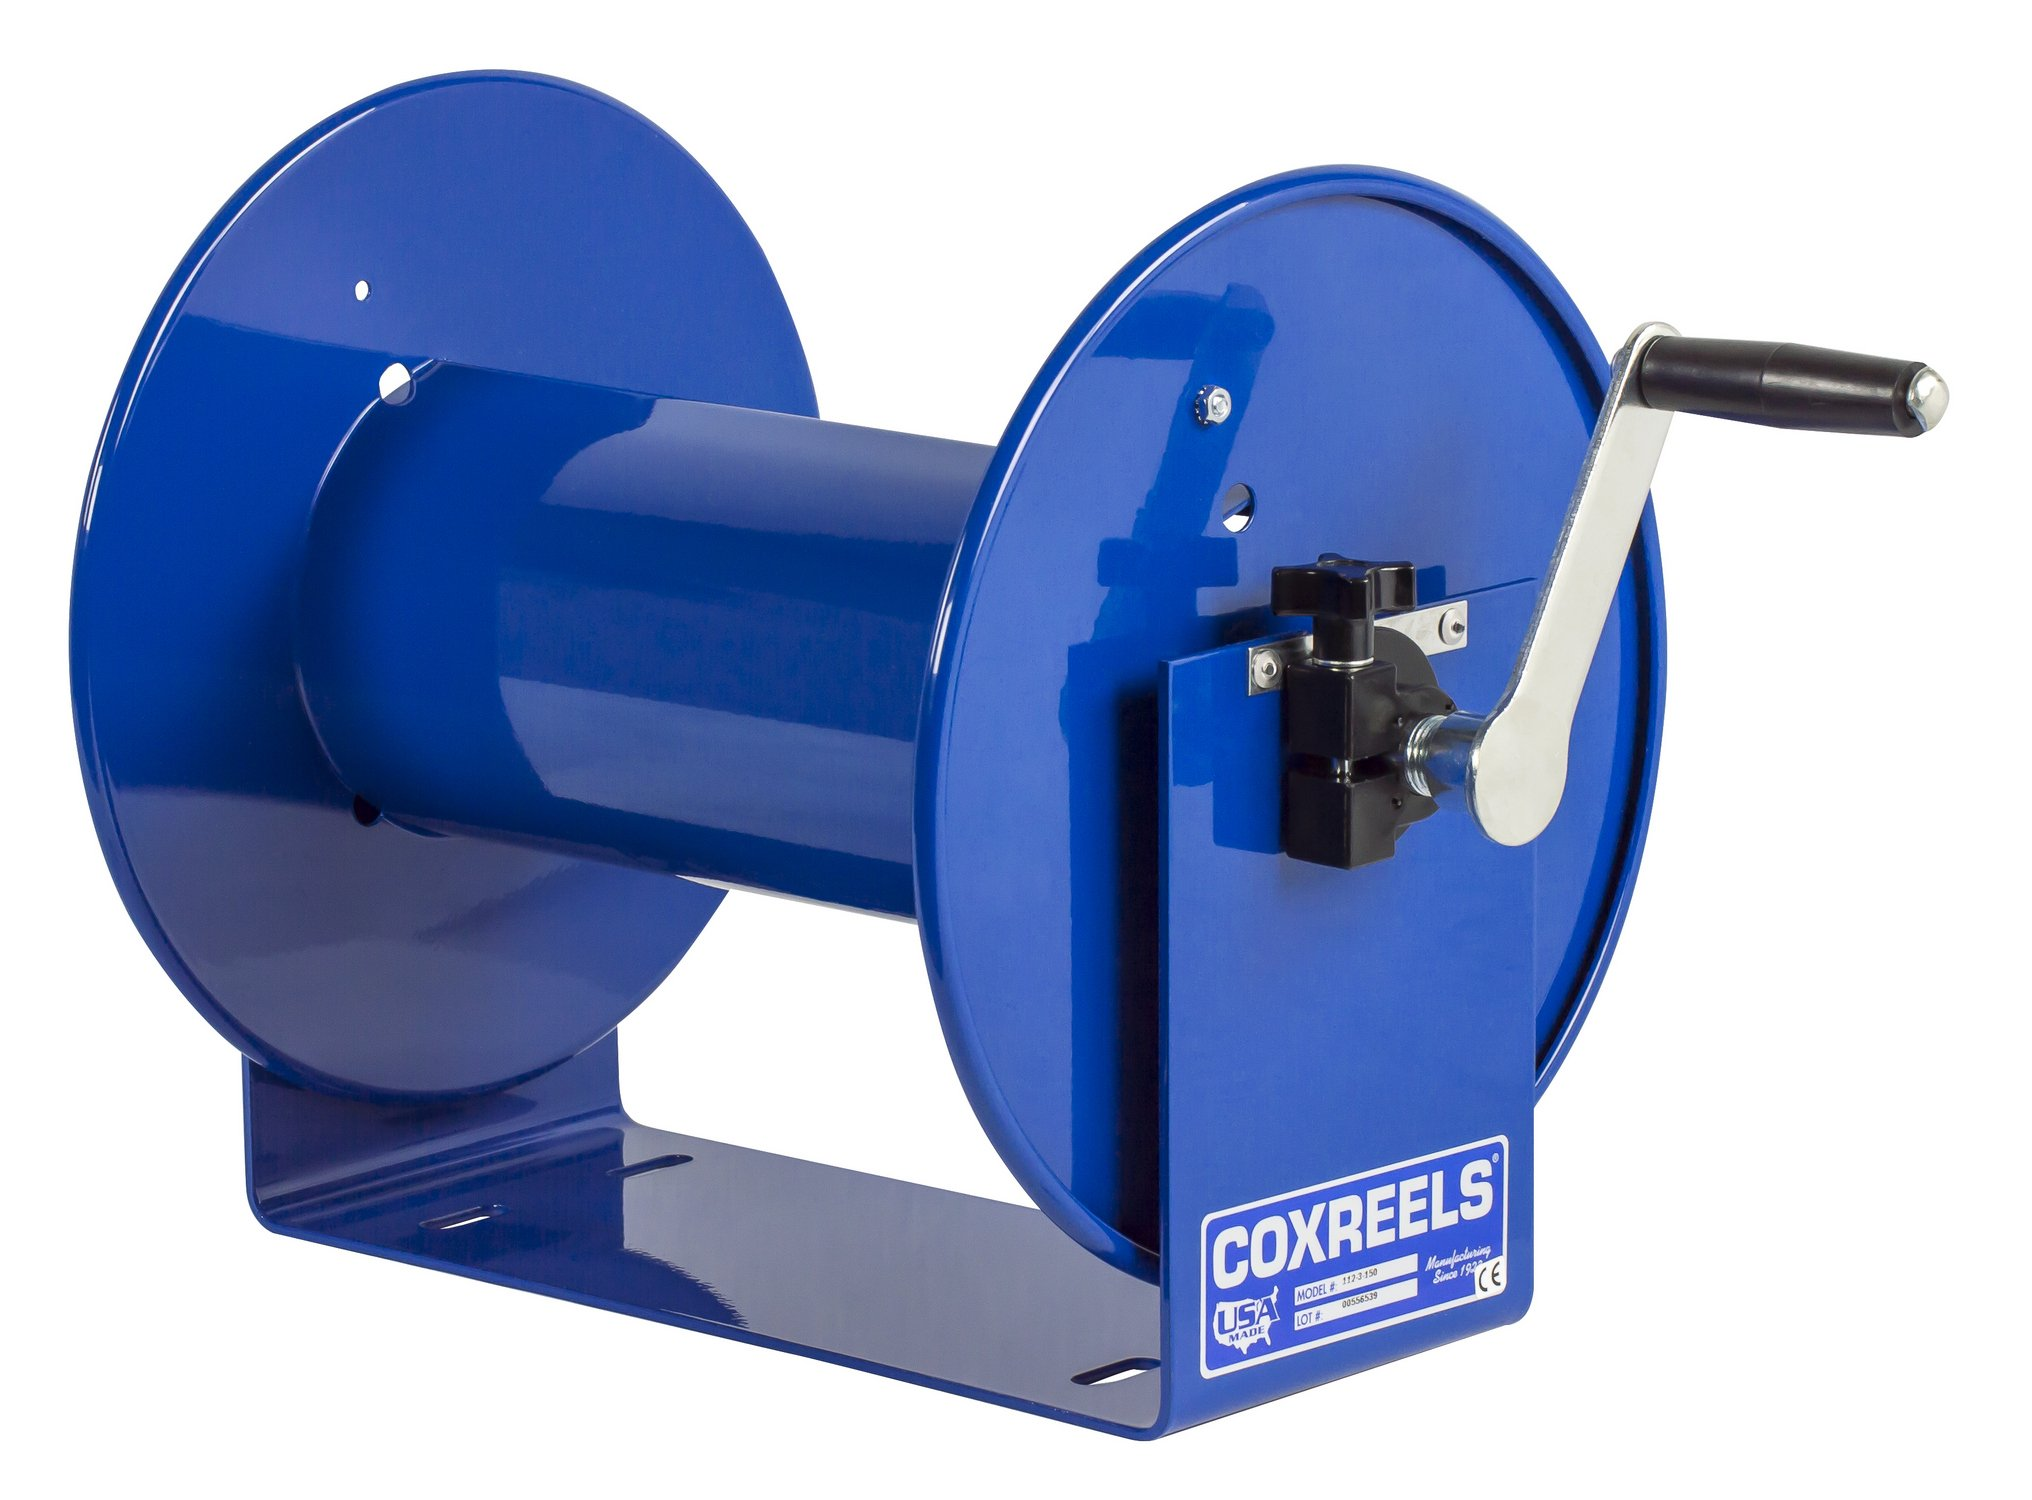 Coxreels 117-3-250 Compact Hand Crank Hose Reel, 4,000 PSI, Holds 3/8'' x 250' Length Hose, Hose Not Included by Coxreels (Image #5)